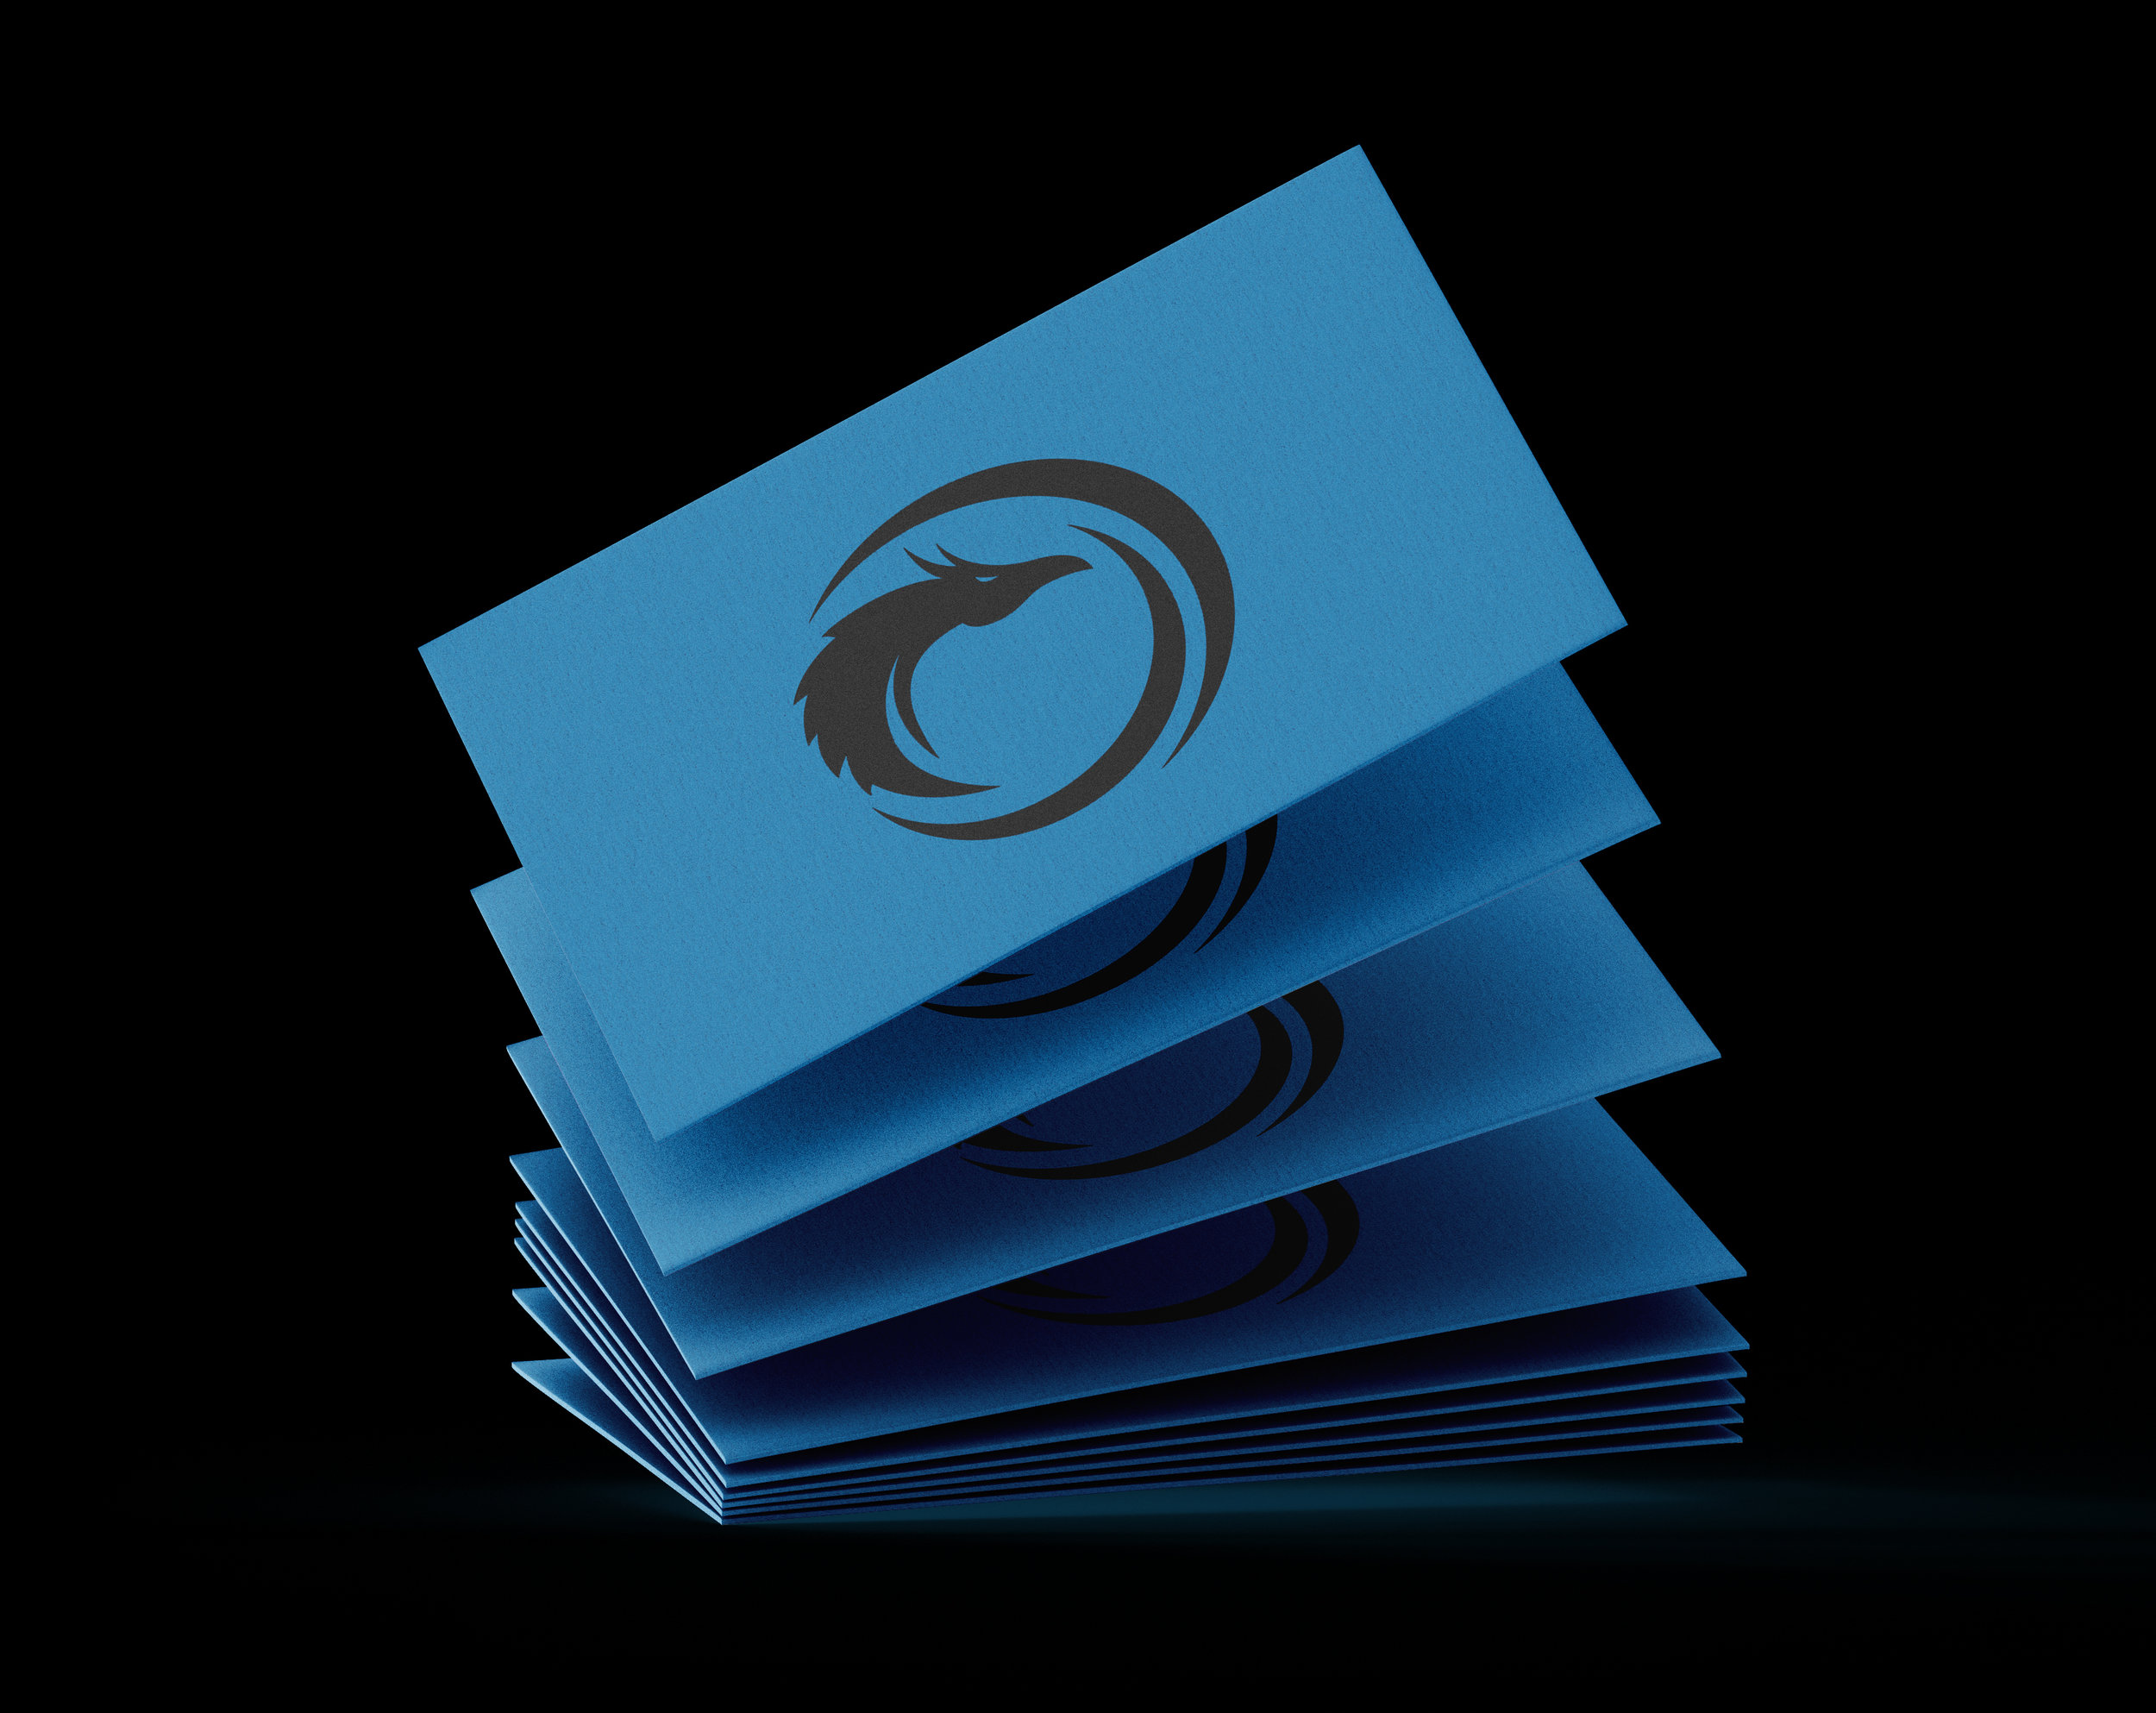 business_card_Blue_front_stack_frontview_air.jpg